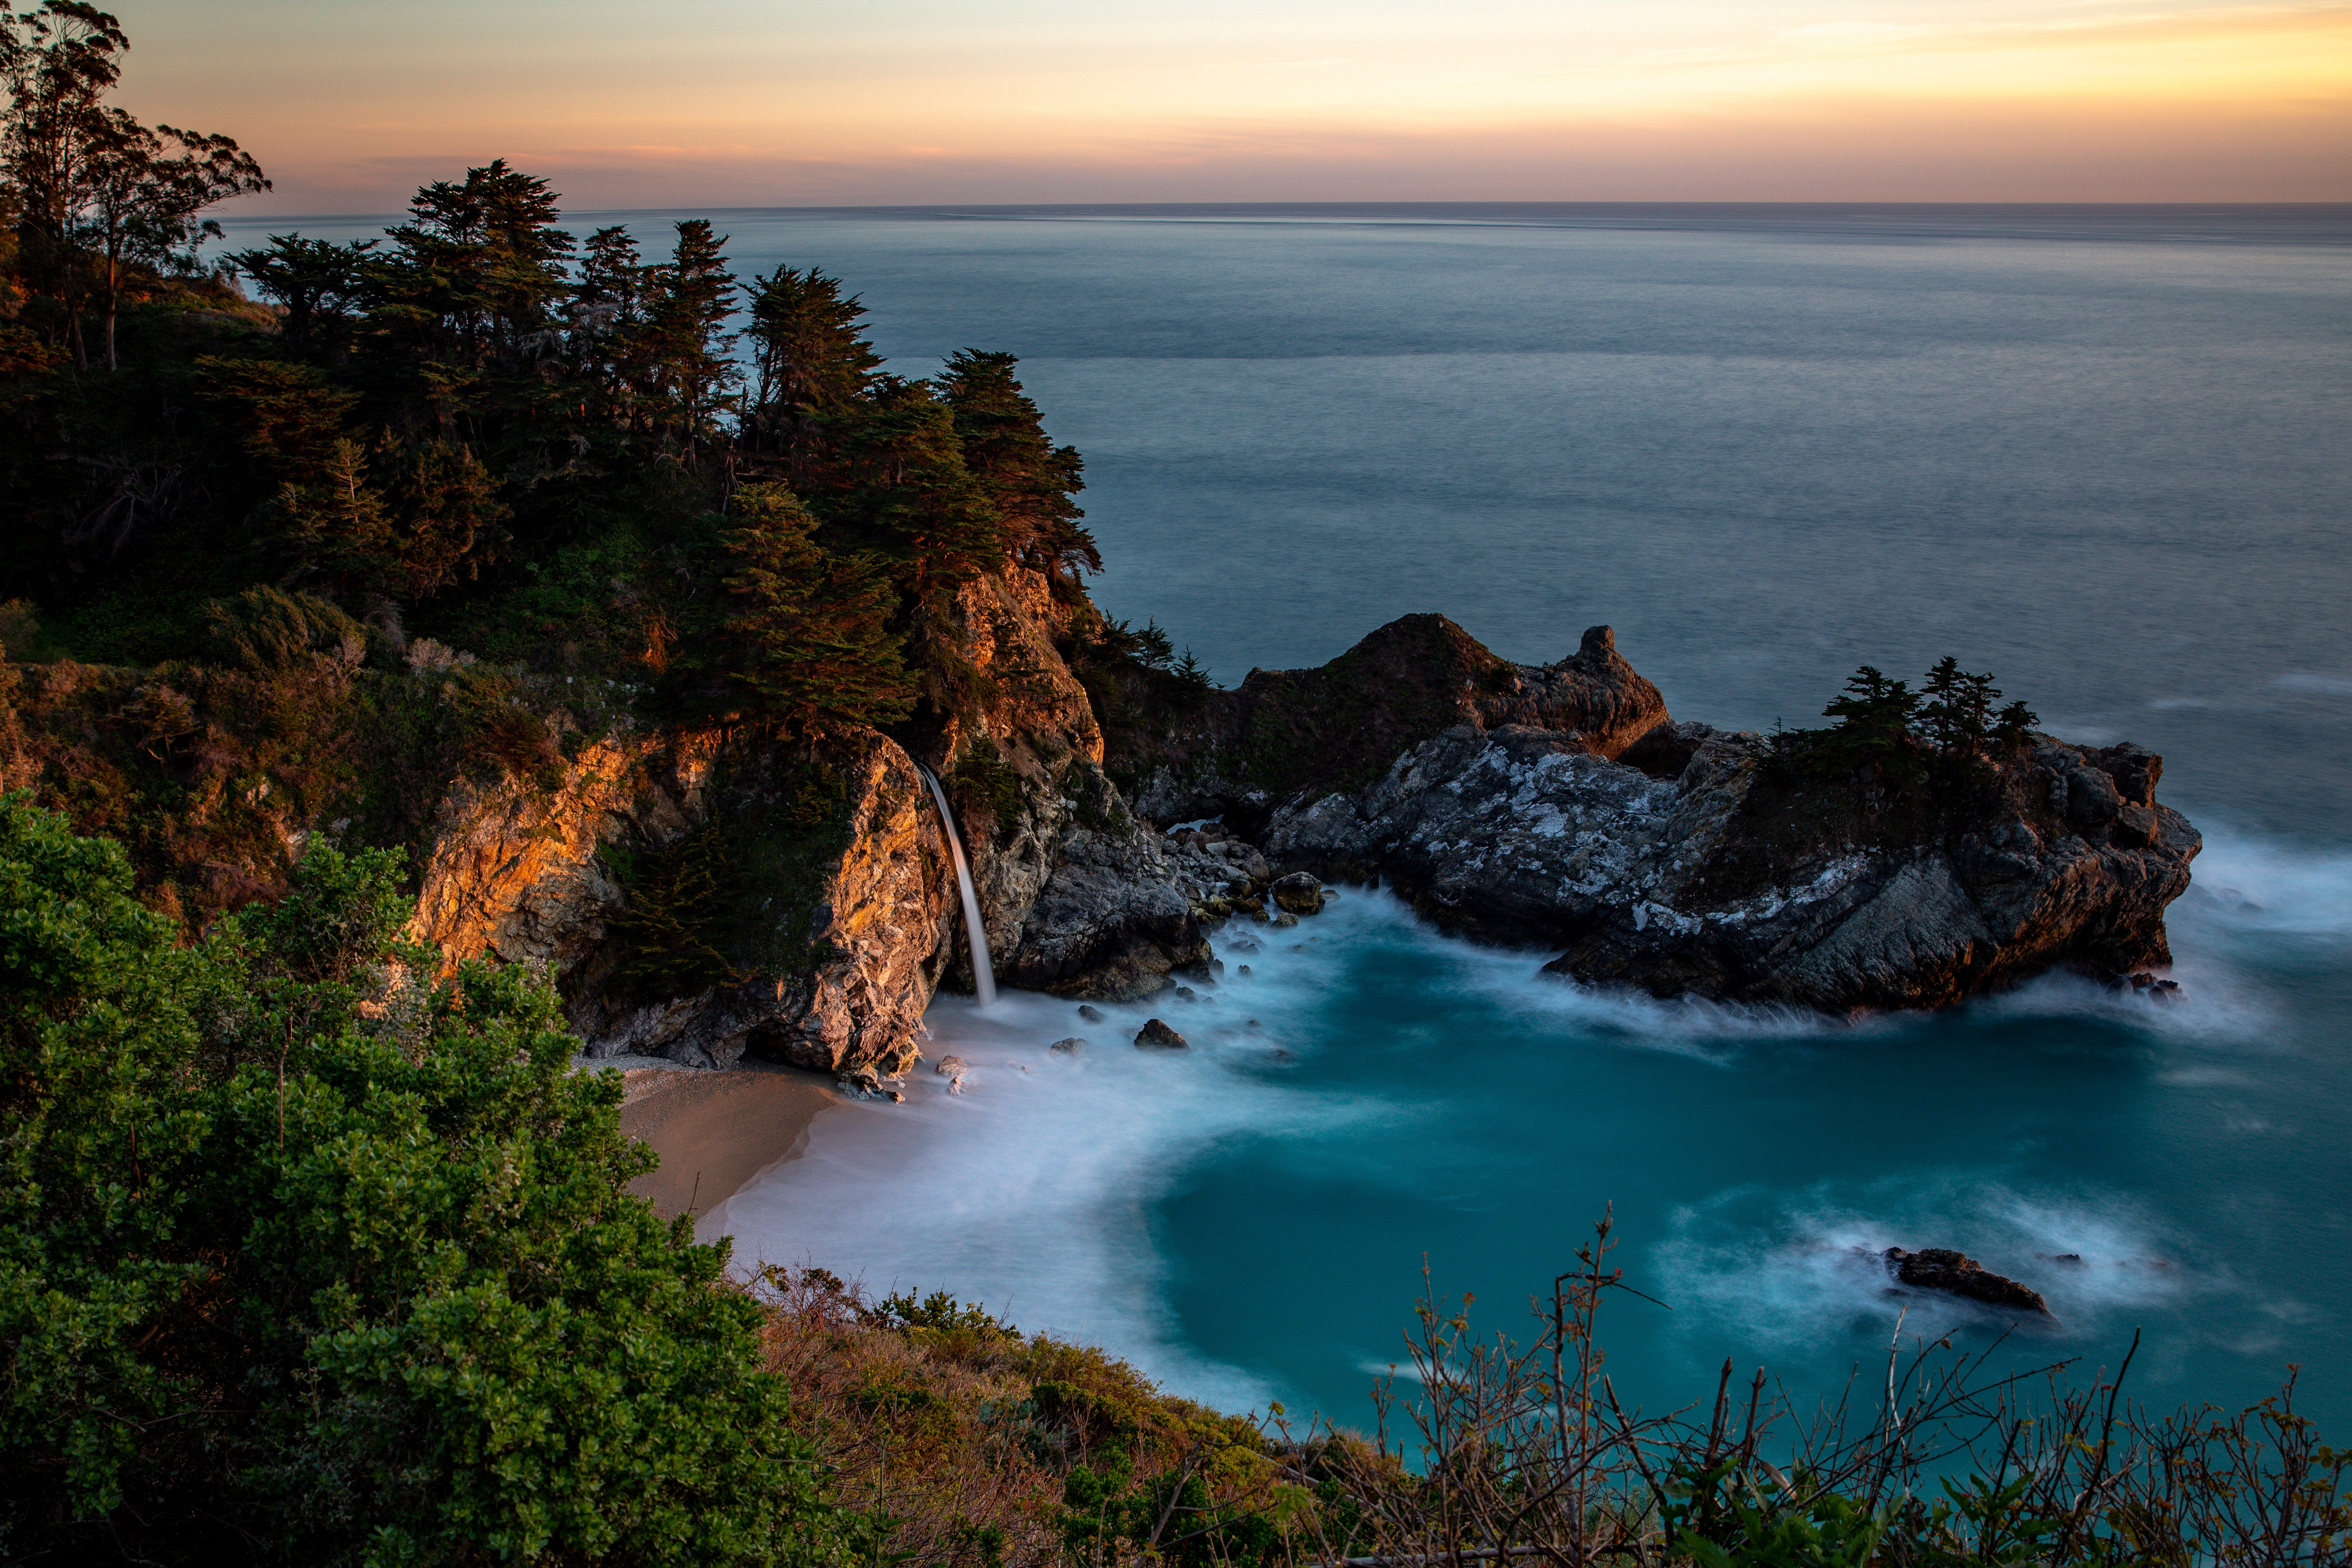 121981 download wallpaper Nature, Bay, Rocks, Waterfall, Sea, Trees, Vegetation, Stone screensavers and pictures for free